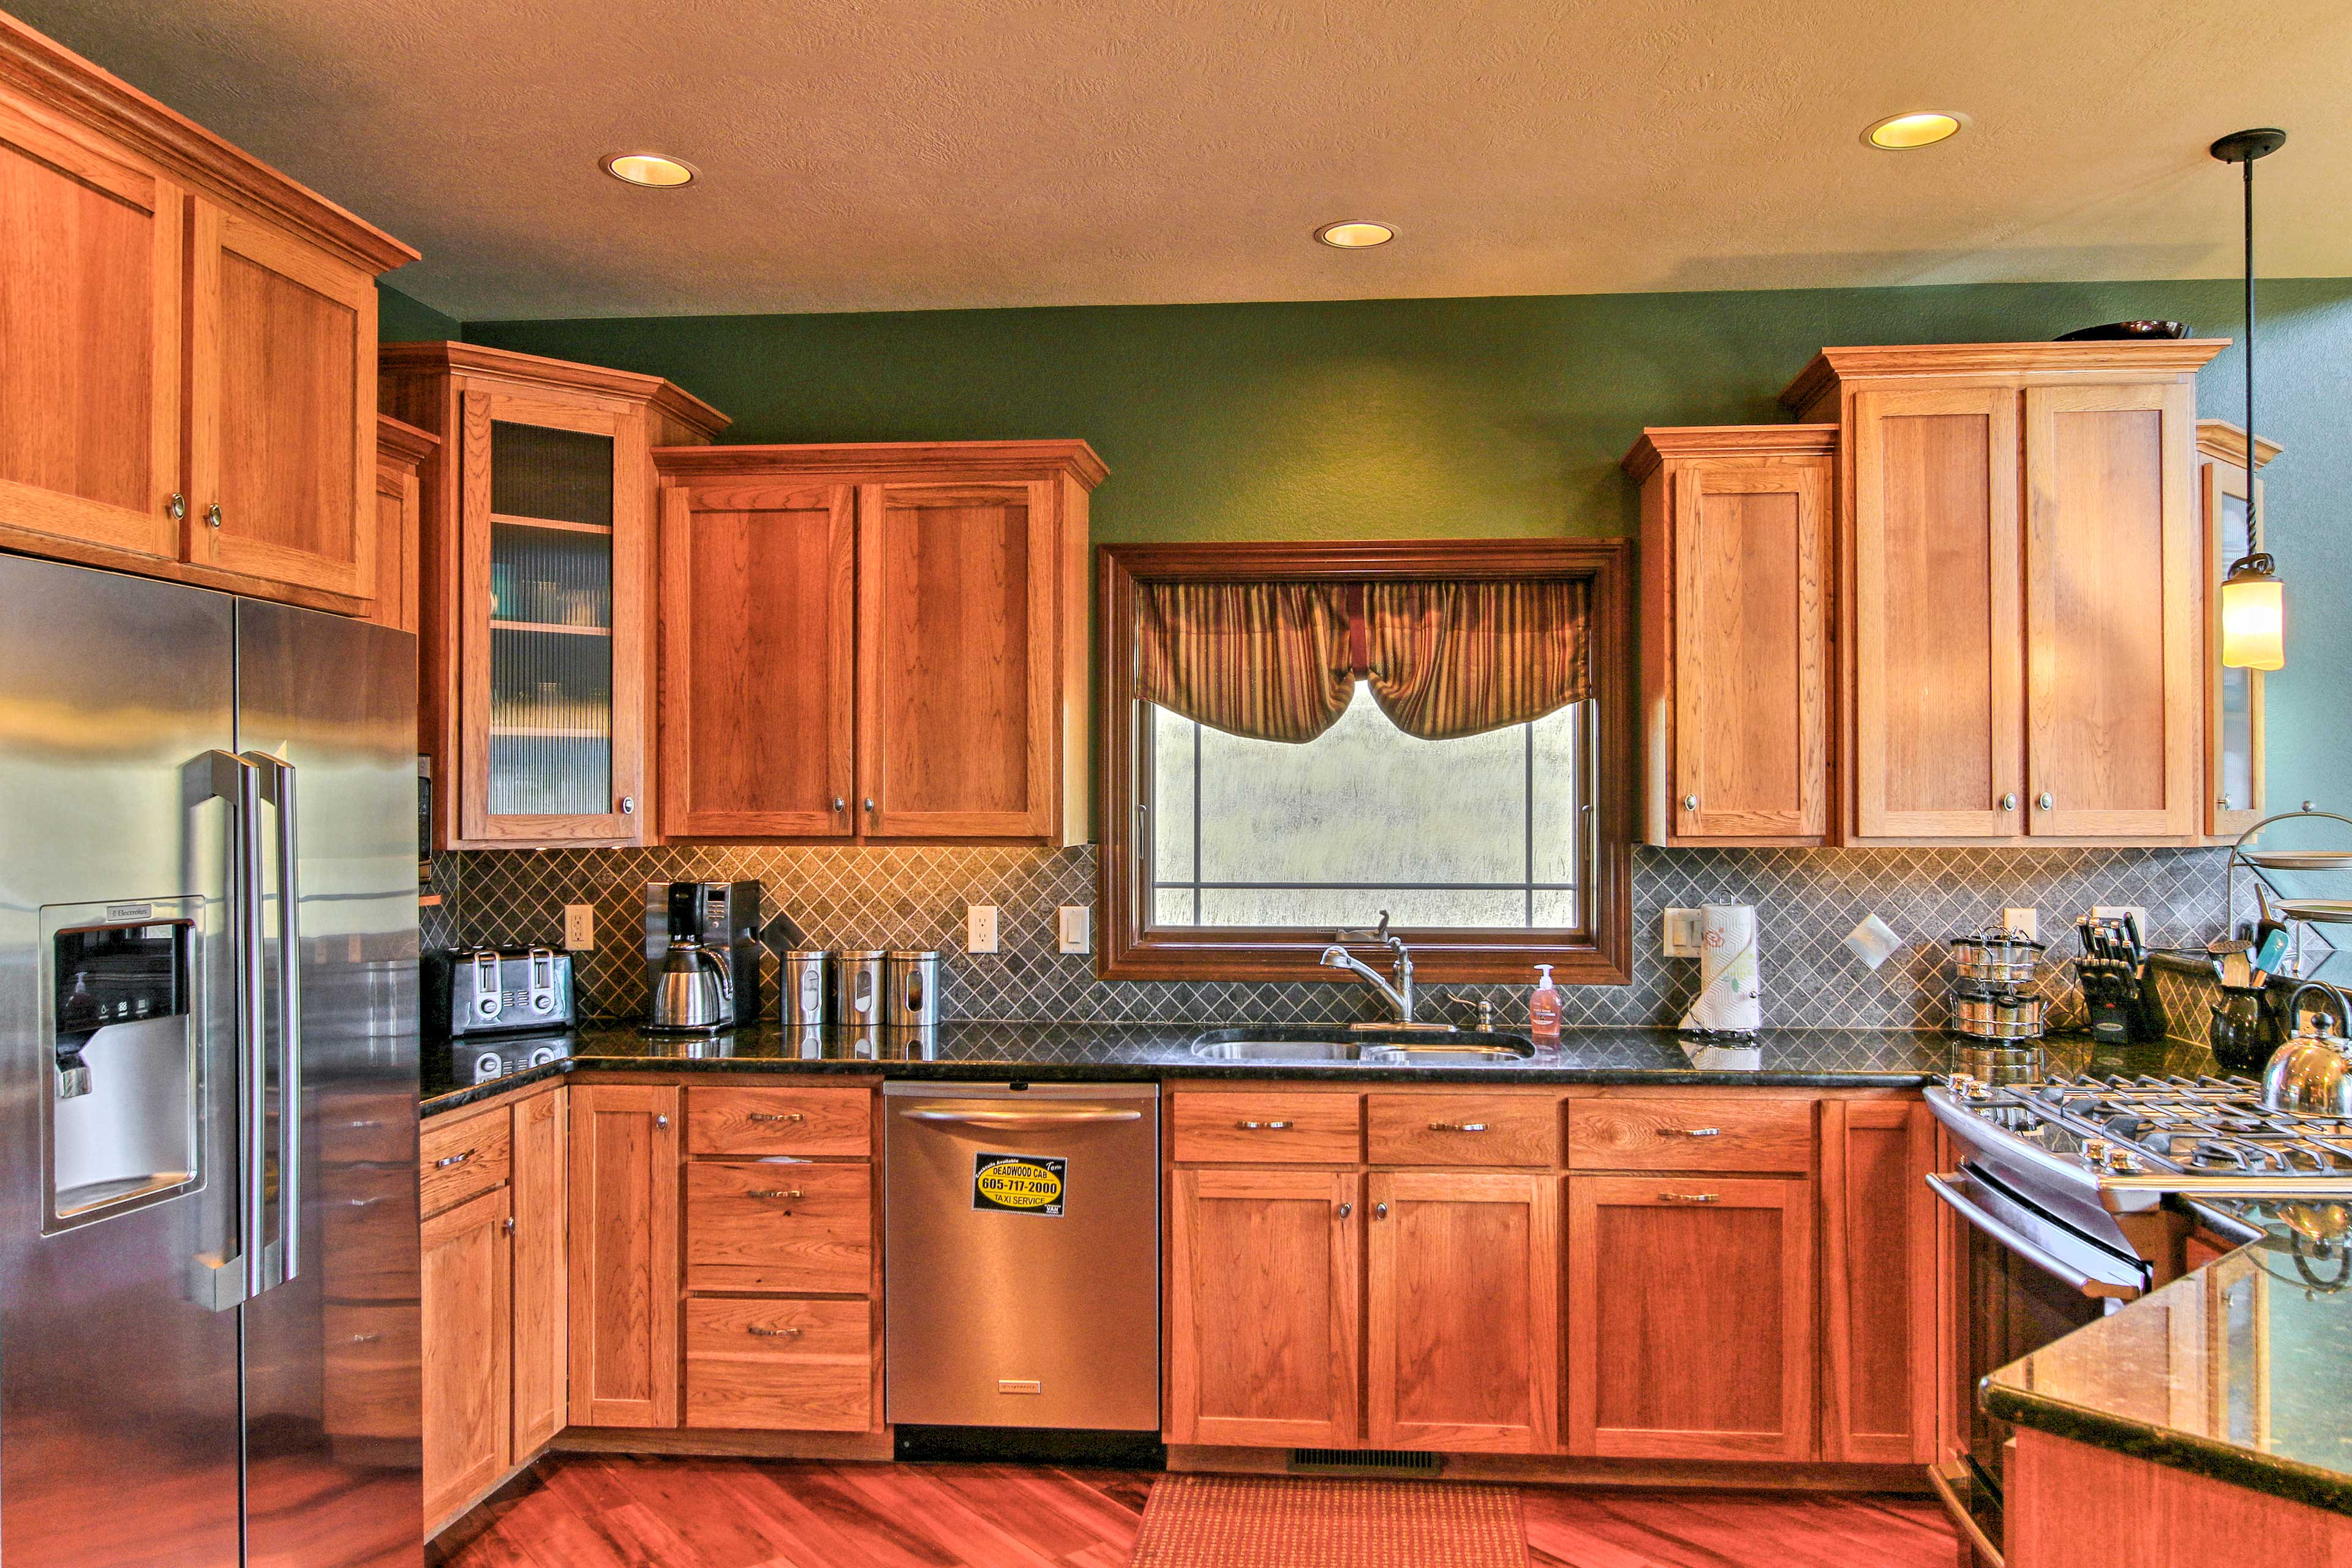 Ample counter space and new stainless steel appliances make home-cooking easy.